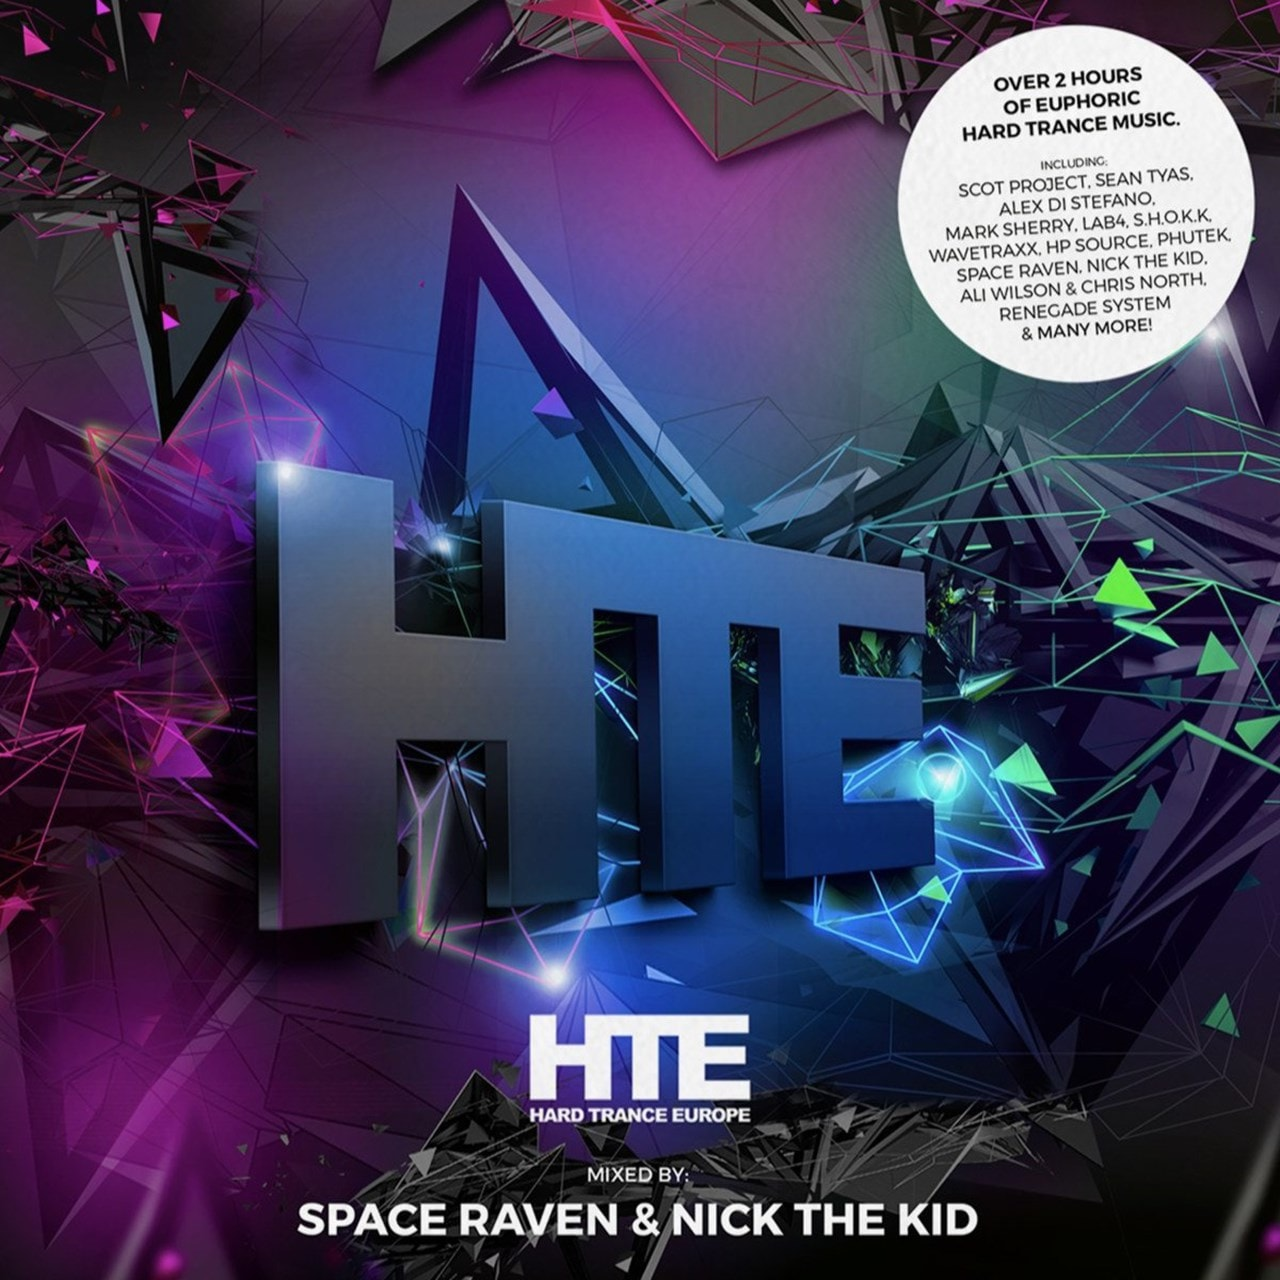 Hard Trance Europe: Mixed By Space Raven & Nick the Kid - Volume 1 - 1